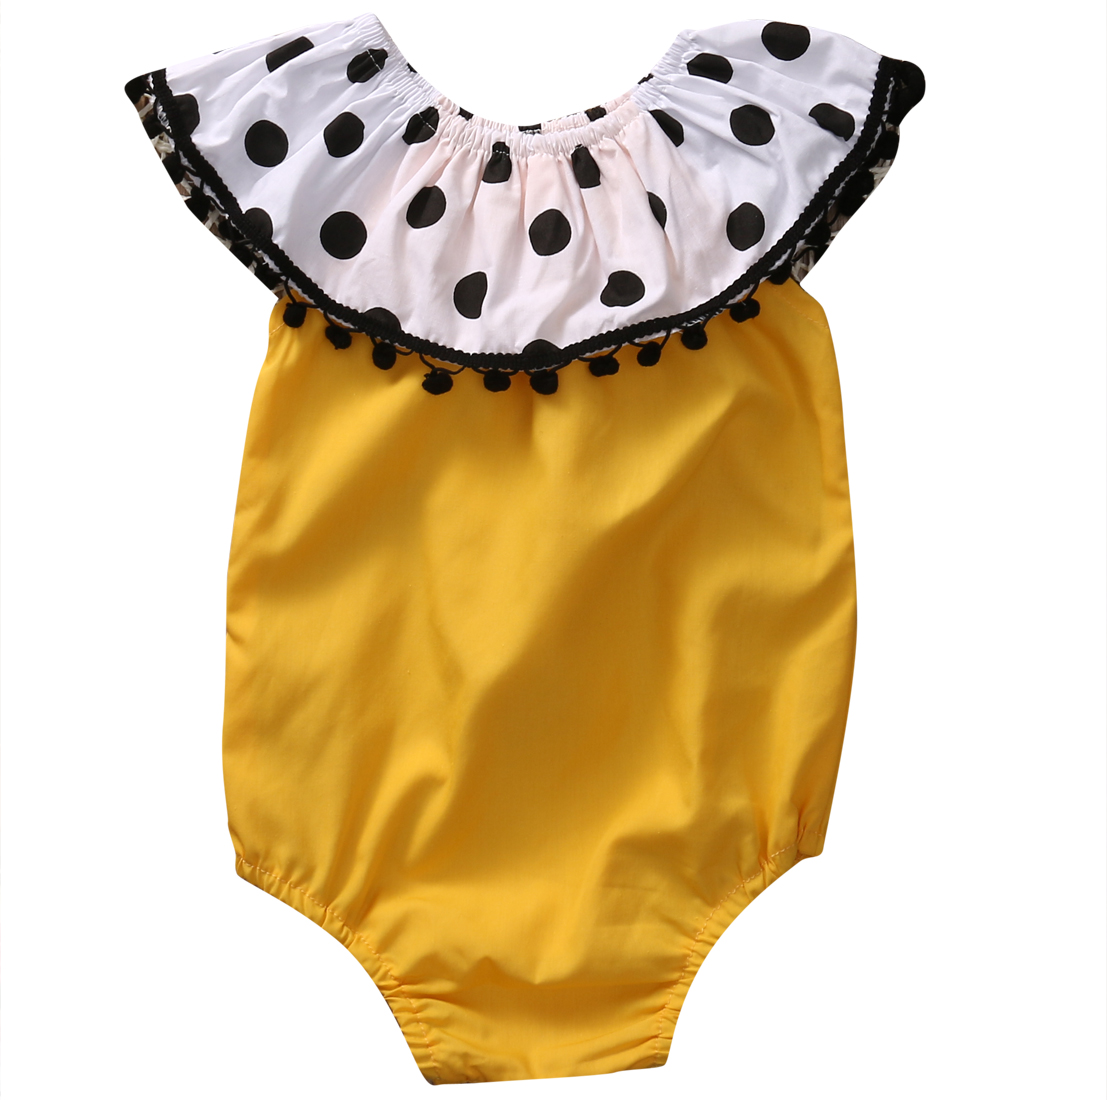 Yellow Newborn Baby Girl Clothes Fashion Infant Bebes   Romper   Polka Dot Pom Pom Tassel Kids Jumpsuit One Pieces Sunsuit 0-24M